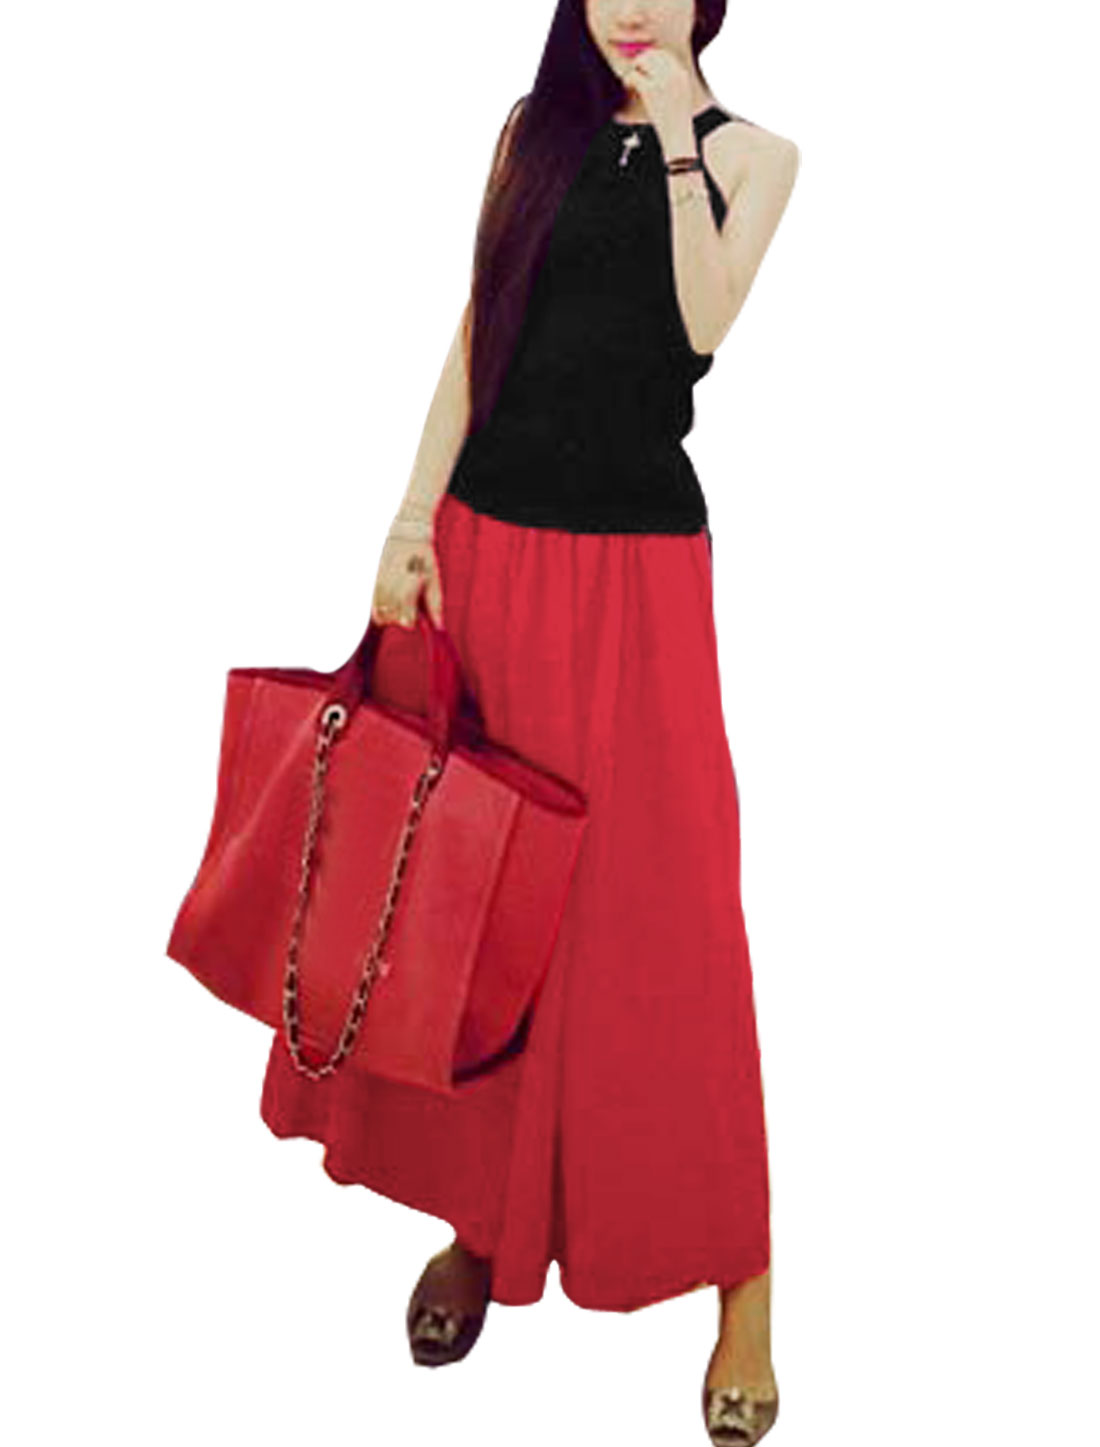 Women Halter Neck Sleeveless Casual Tops w Elastic Waist Long Skirt Black Red XS